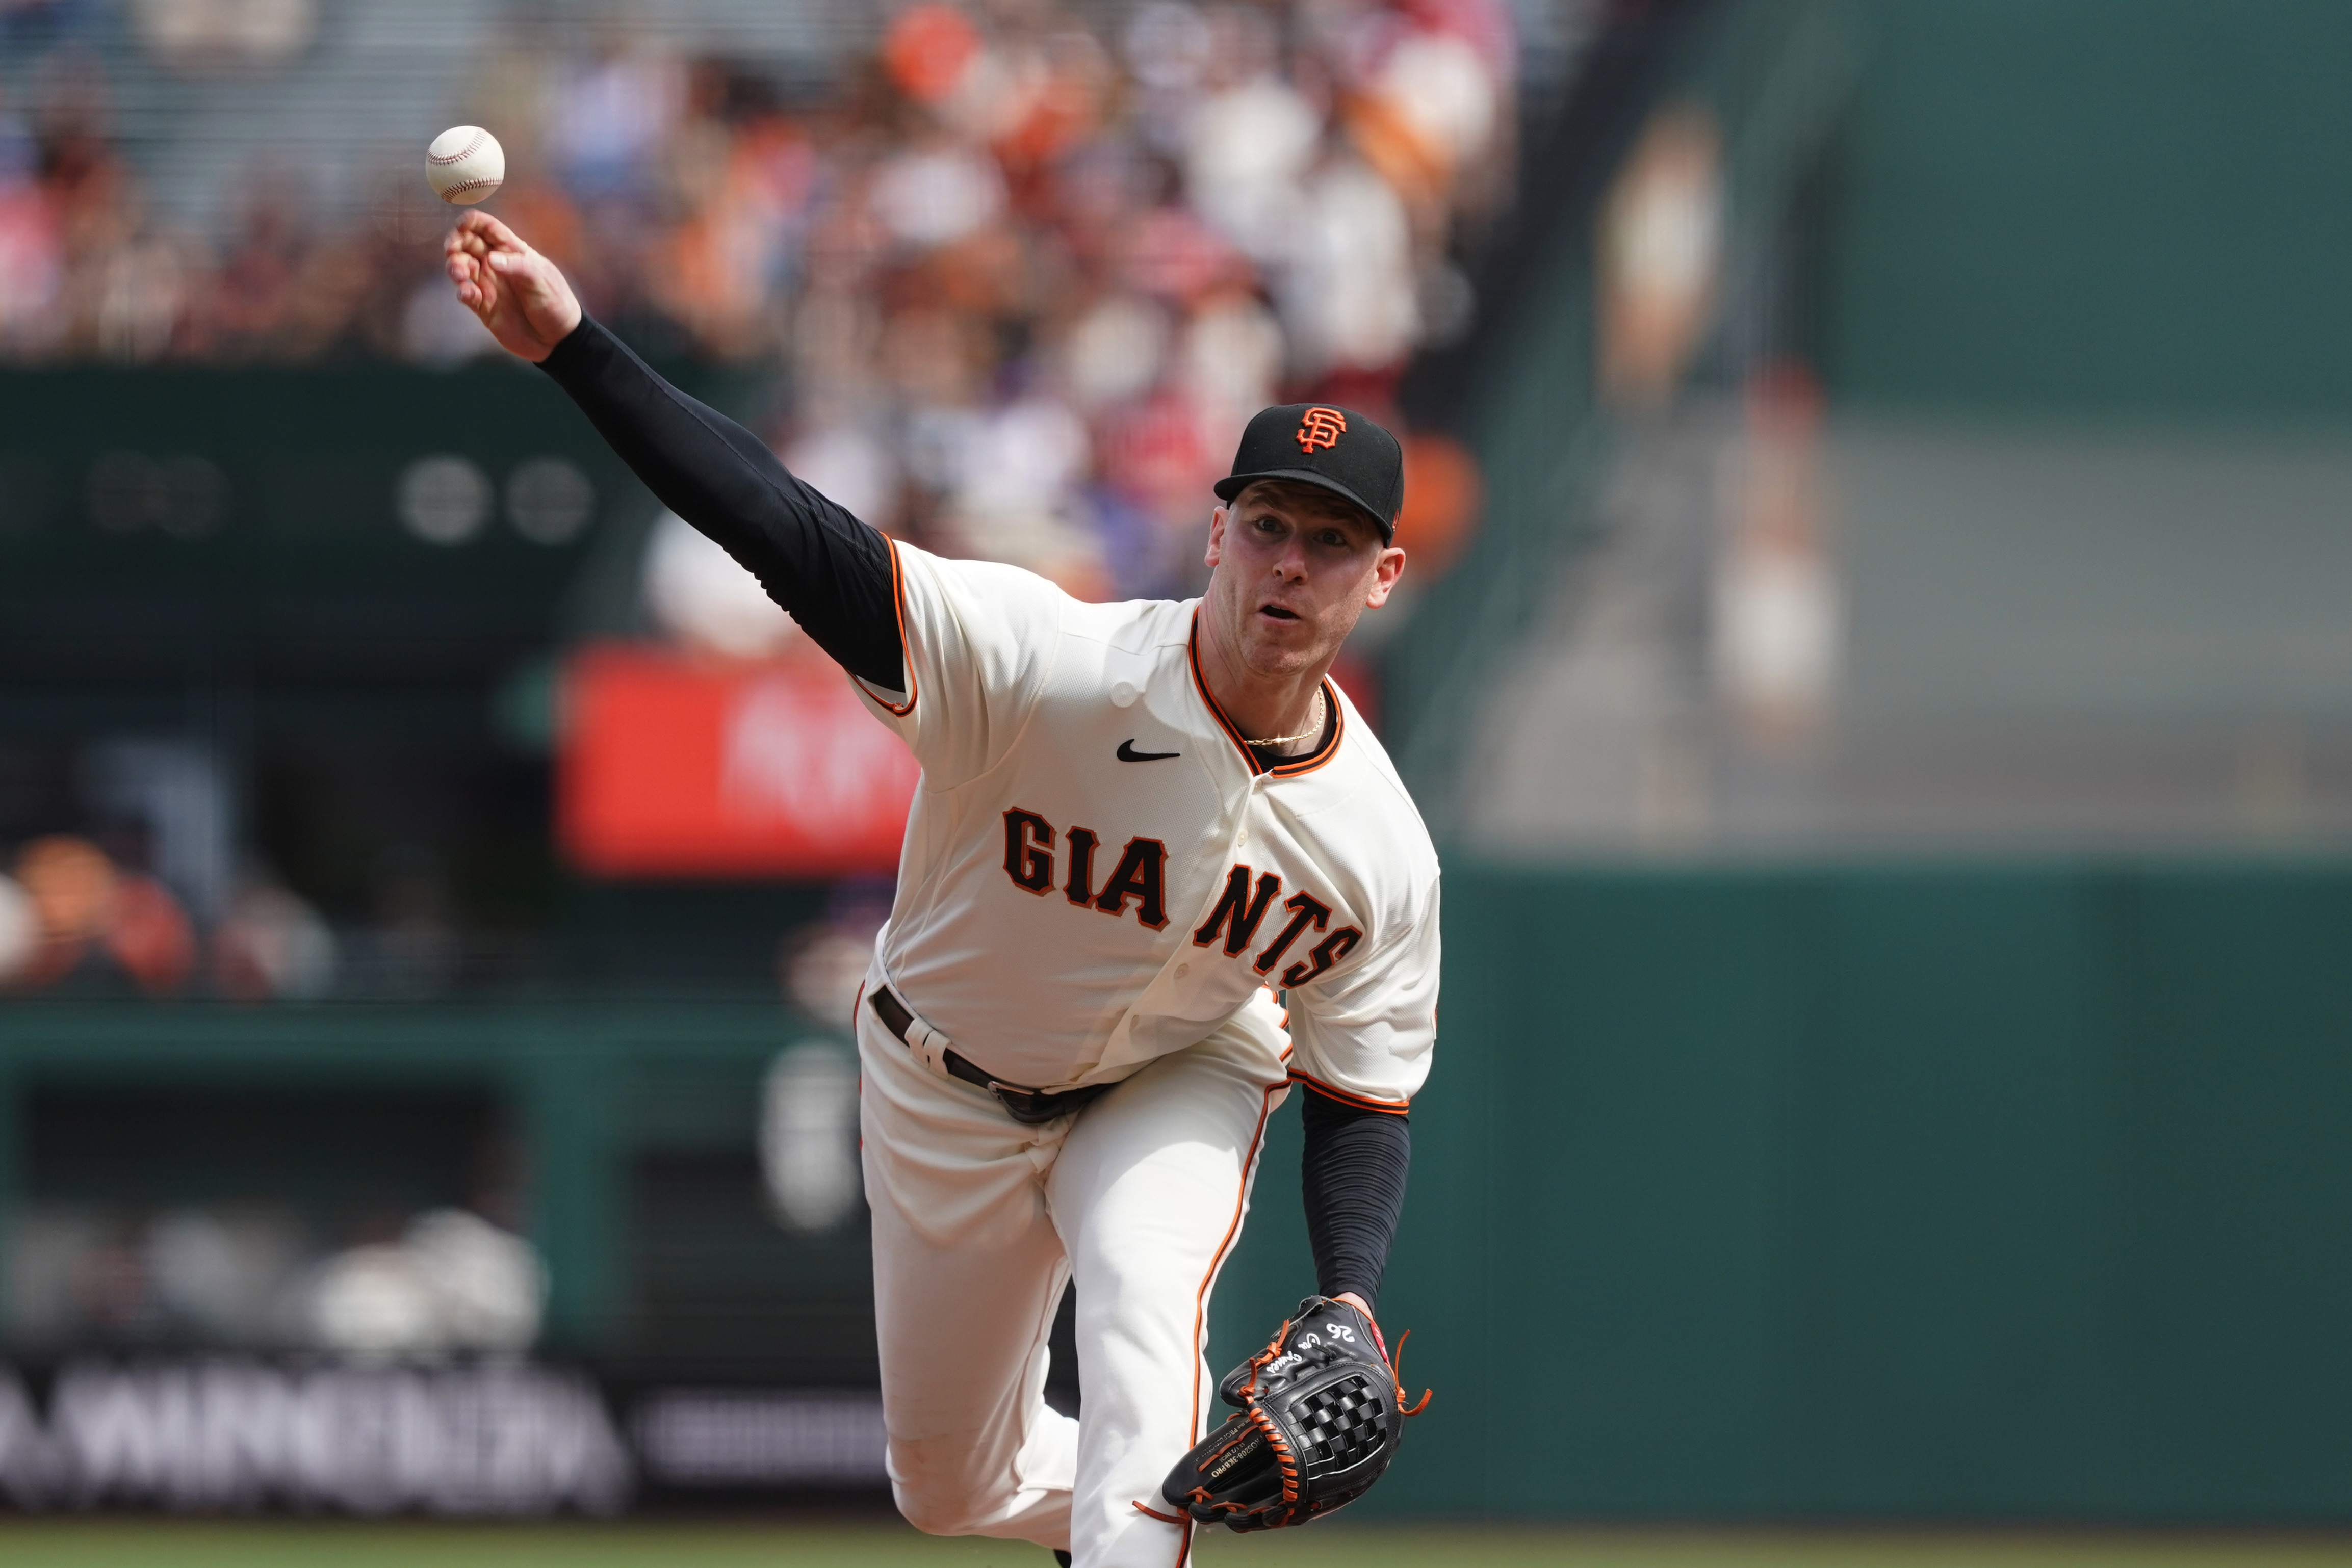 Sep 19, 2021; San Francisco, California, USA; San Francisco Giants starting pitcher Anthony DeSclafani (26) throws a pitch during the third inning against the Atlanta Braves at Oracle Park. Mandatory Credit: Darren Yamashita-USA TODAY Sports